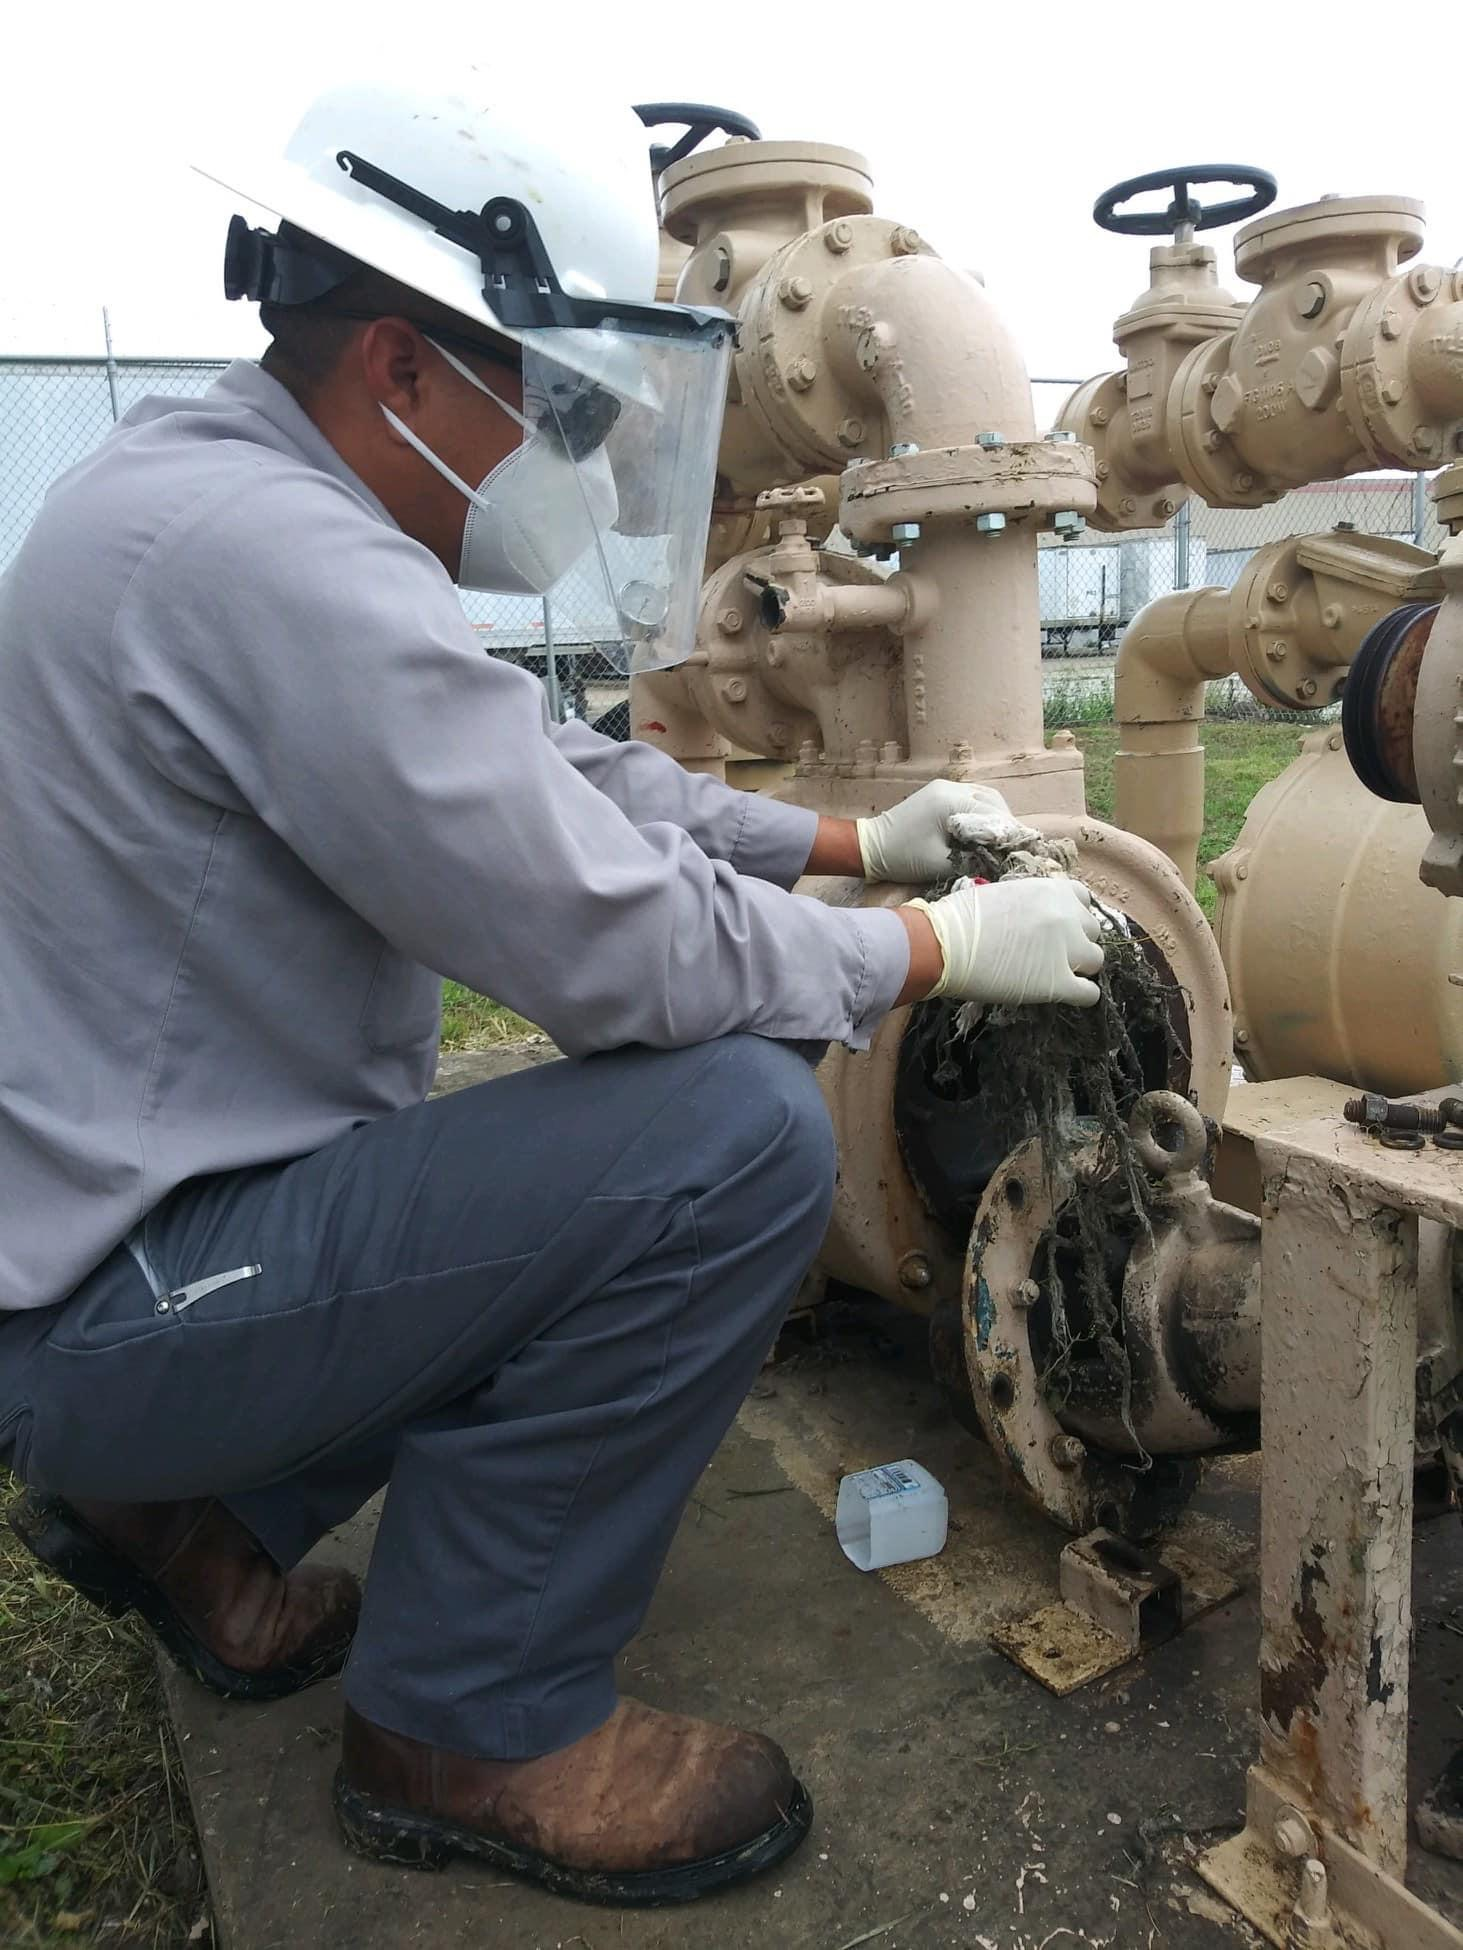 maintenance worker clearing clogged pipe